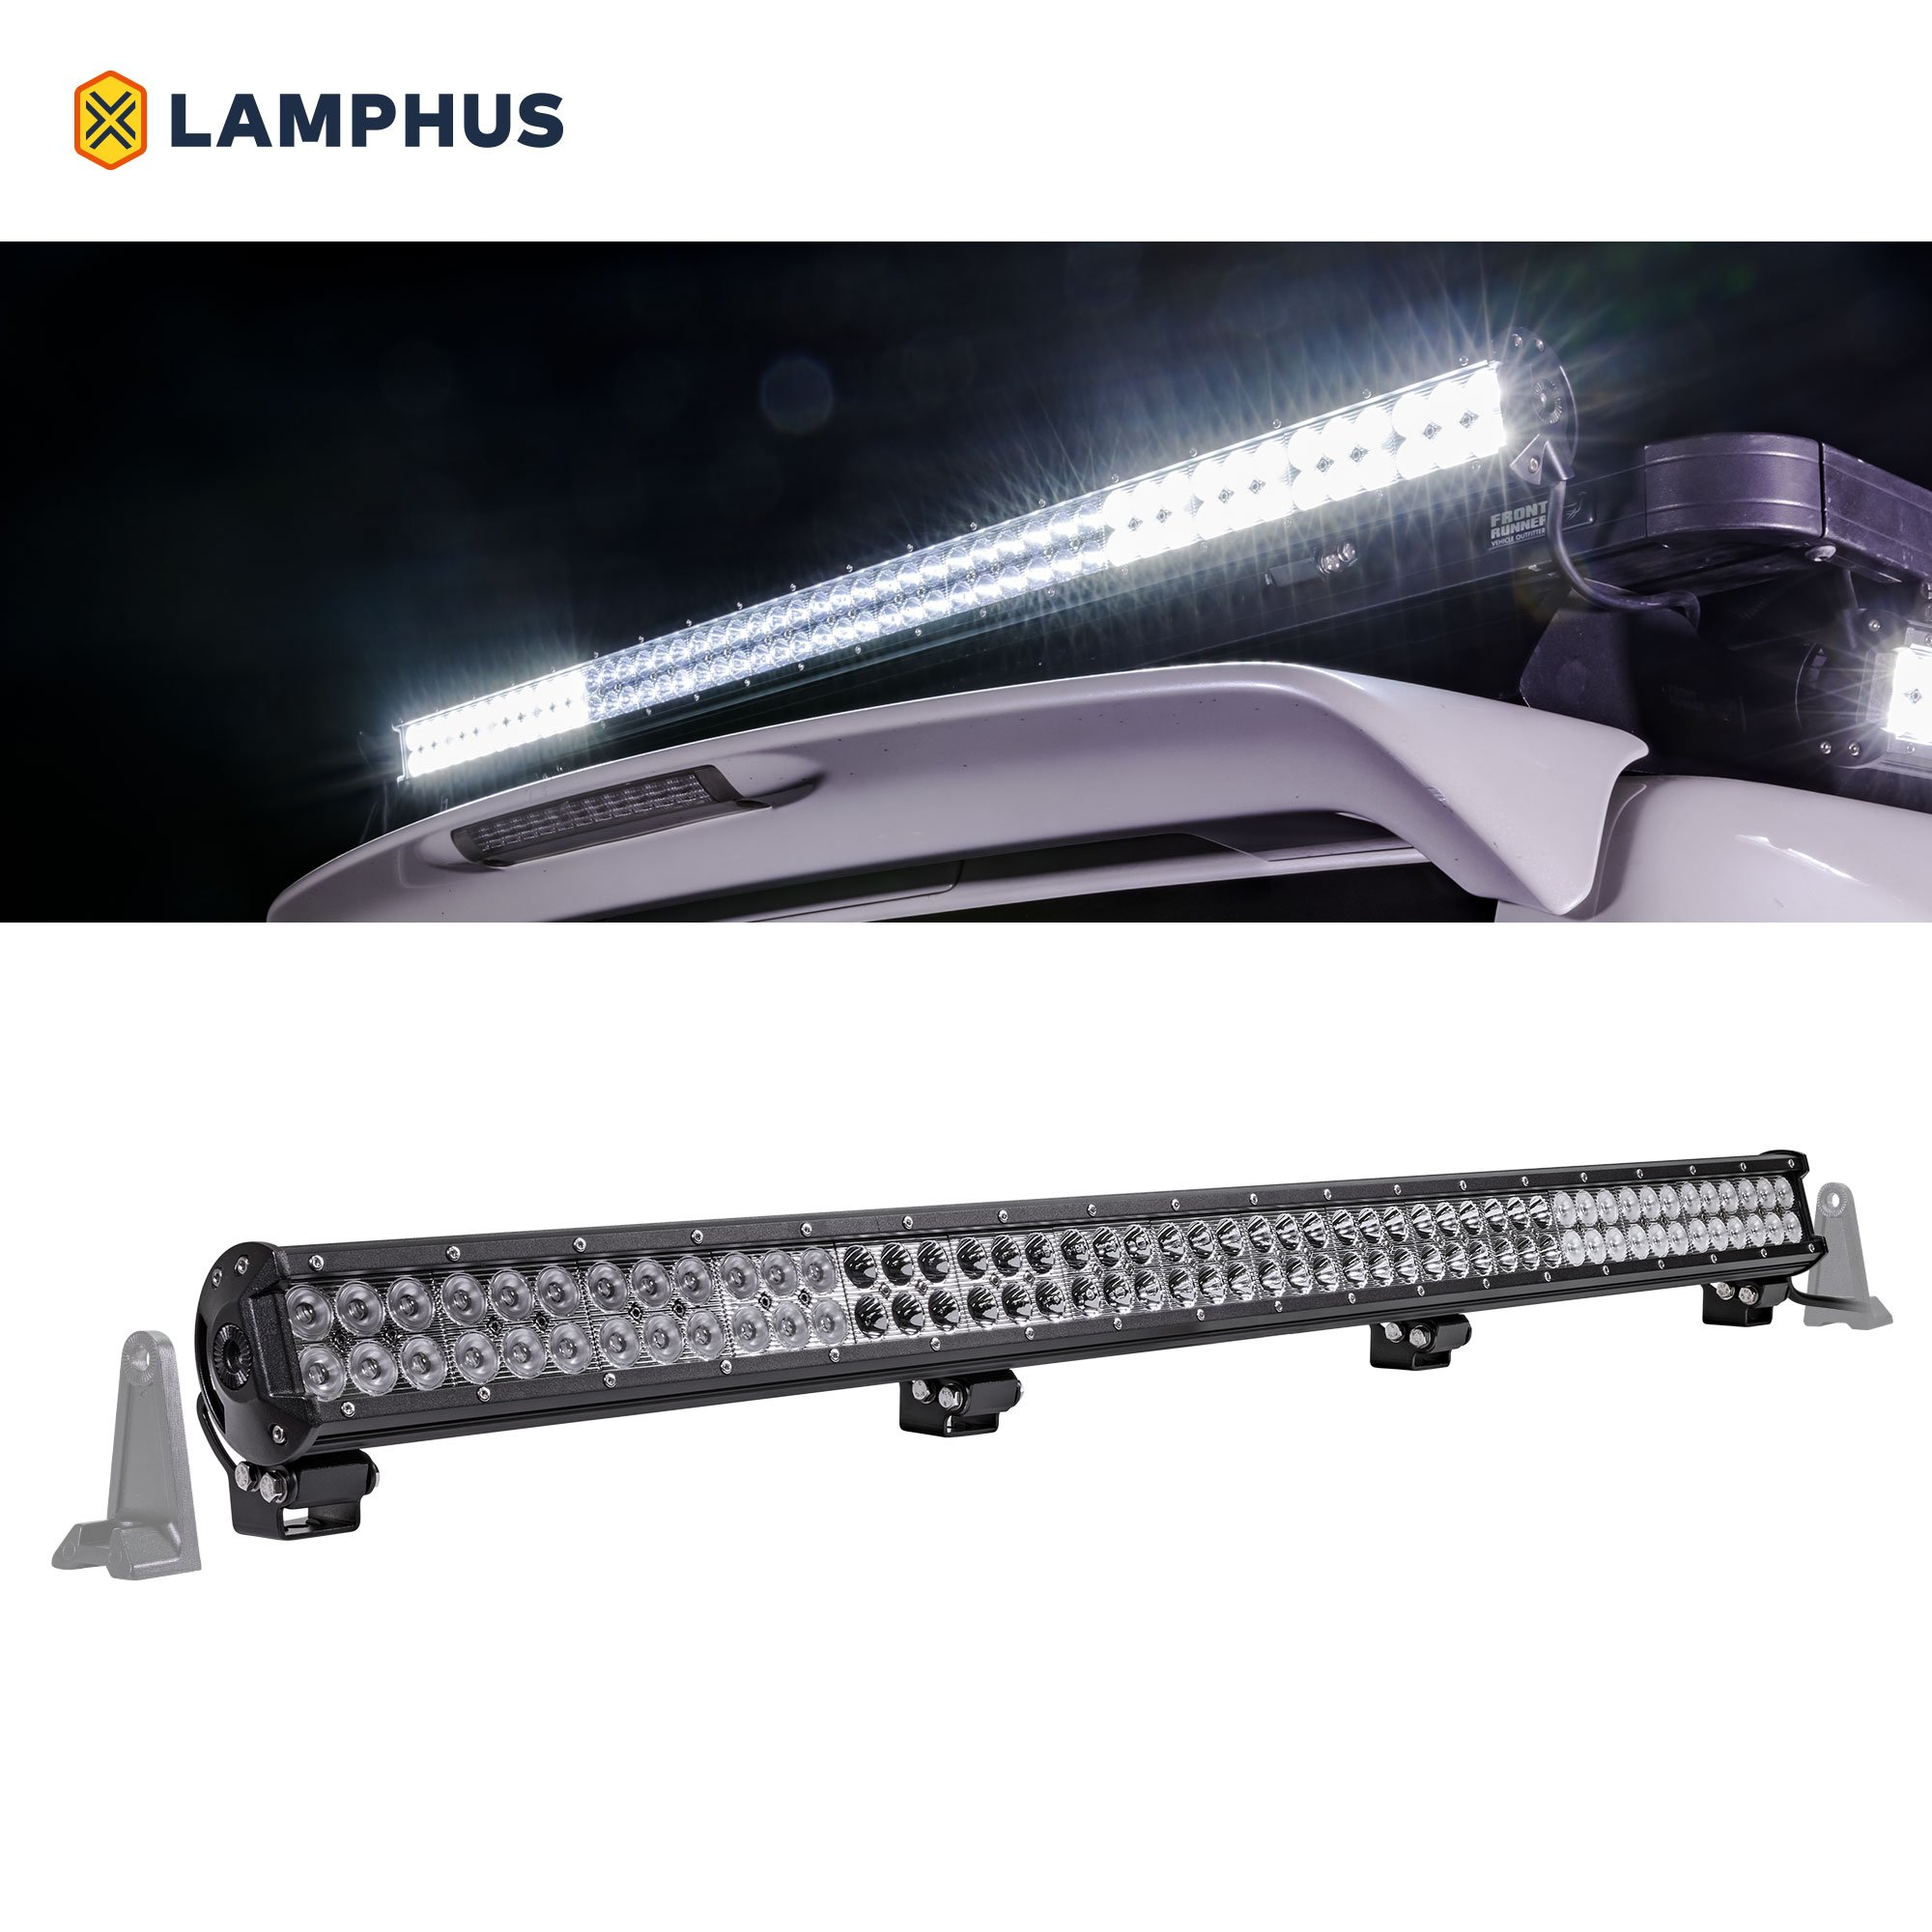 LAMPHUS CRUIZER 44'' 288W LED Flood/Spot Combo [30/60 Degree Spread] [Spot/Flood/Driving Light Applications] [IP67] – For Off-Road, Agricultural, Construction & Marine Use